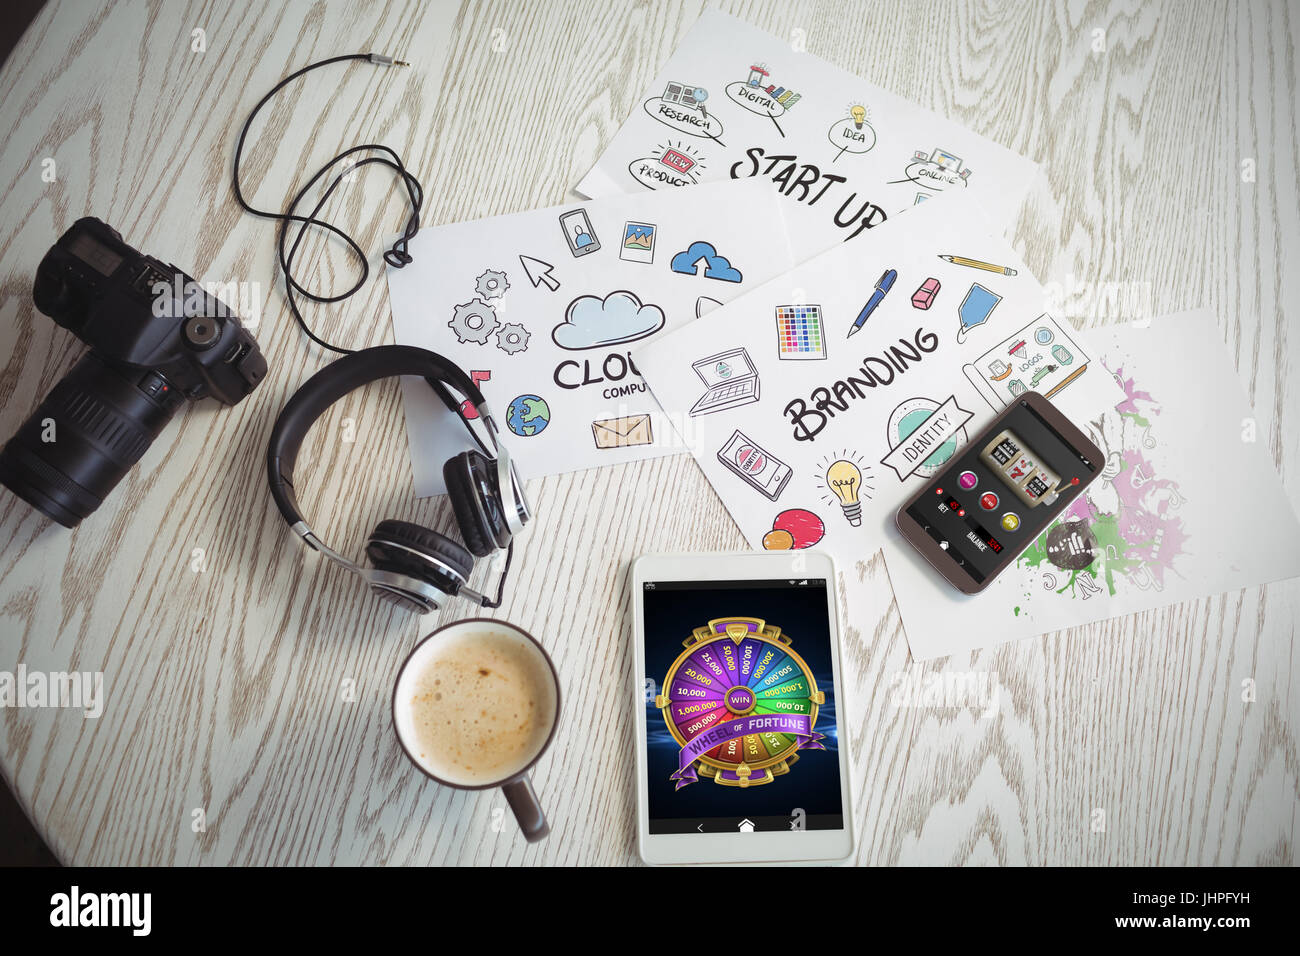 Colorful wheel of fortune on mobile display against various technologies with colorful charts and coffee on table - Stock Image